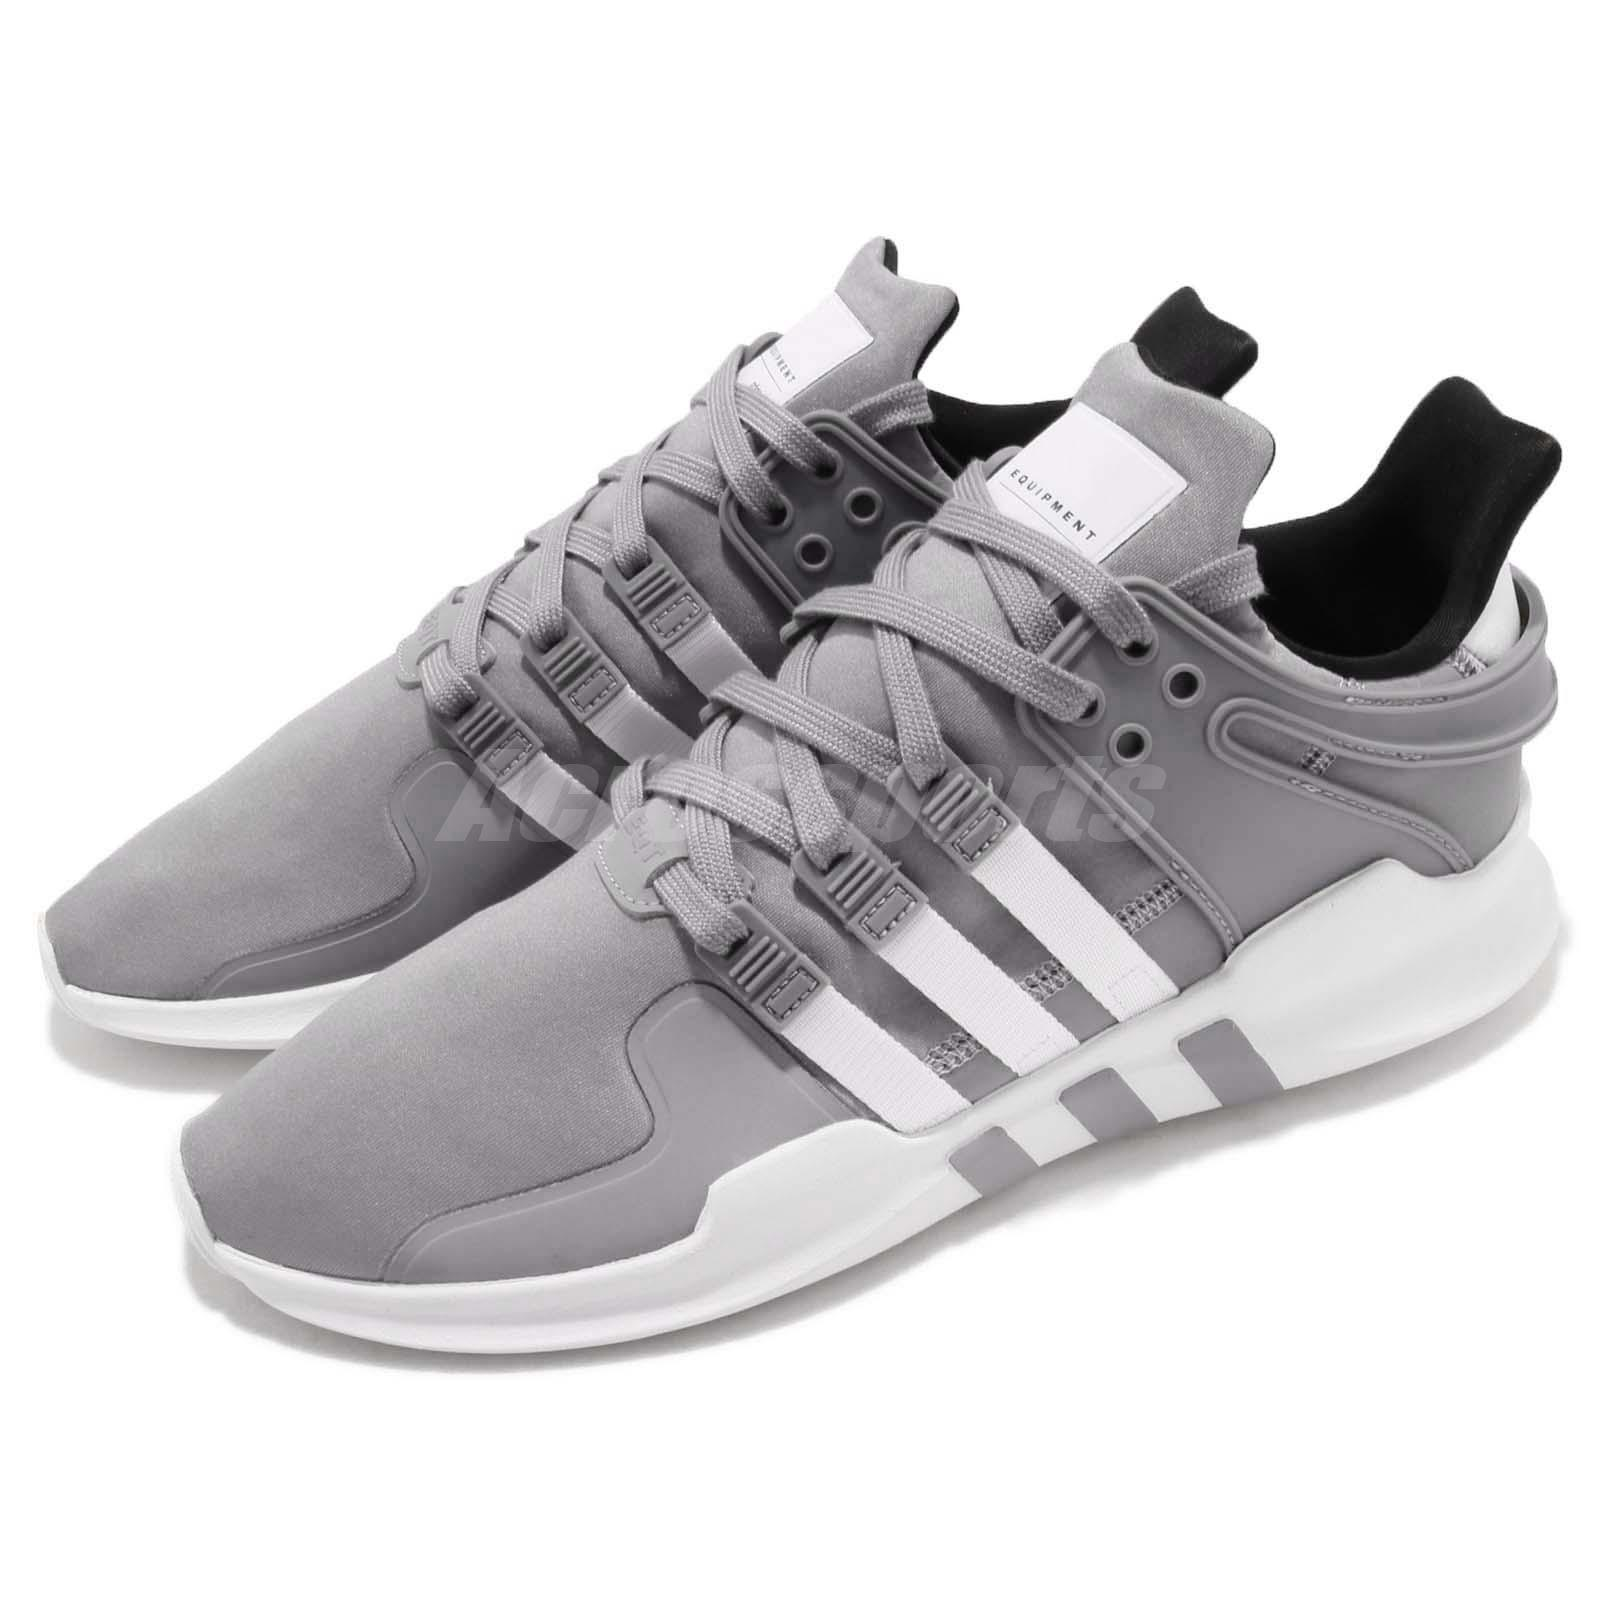 wholesale dealer 539c6 920a1 Details about adidas Originals EQT Support ADV Grey White Men Running Shoes  Sneakers B37355